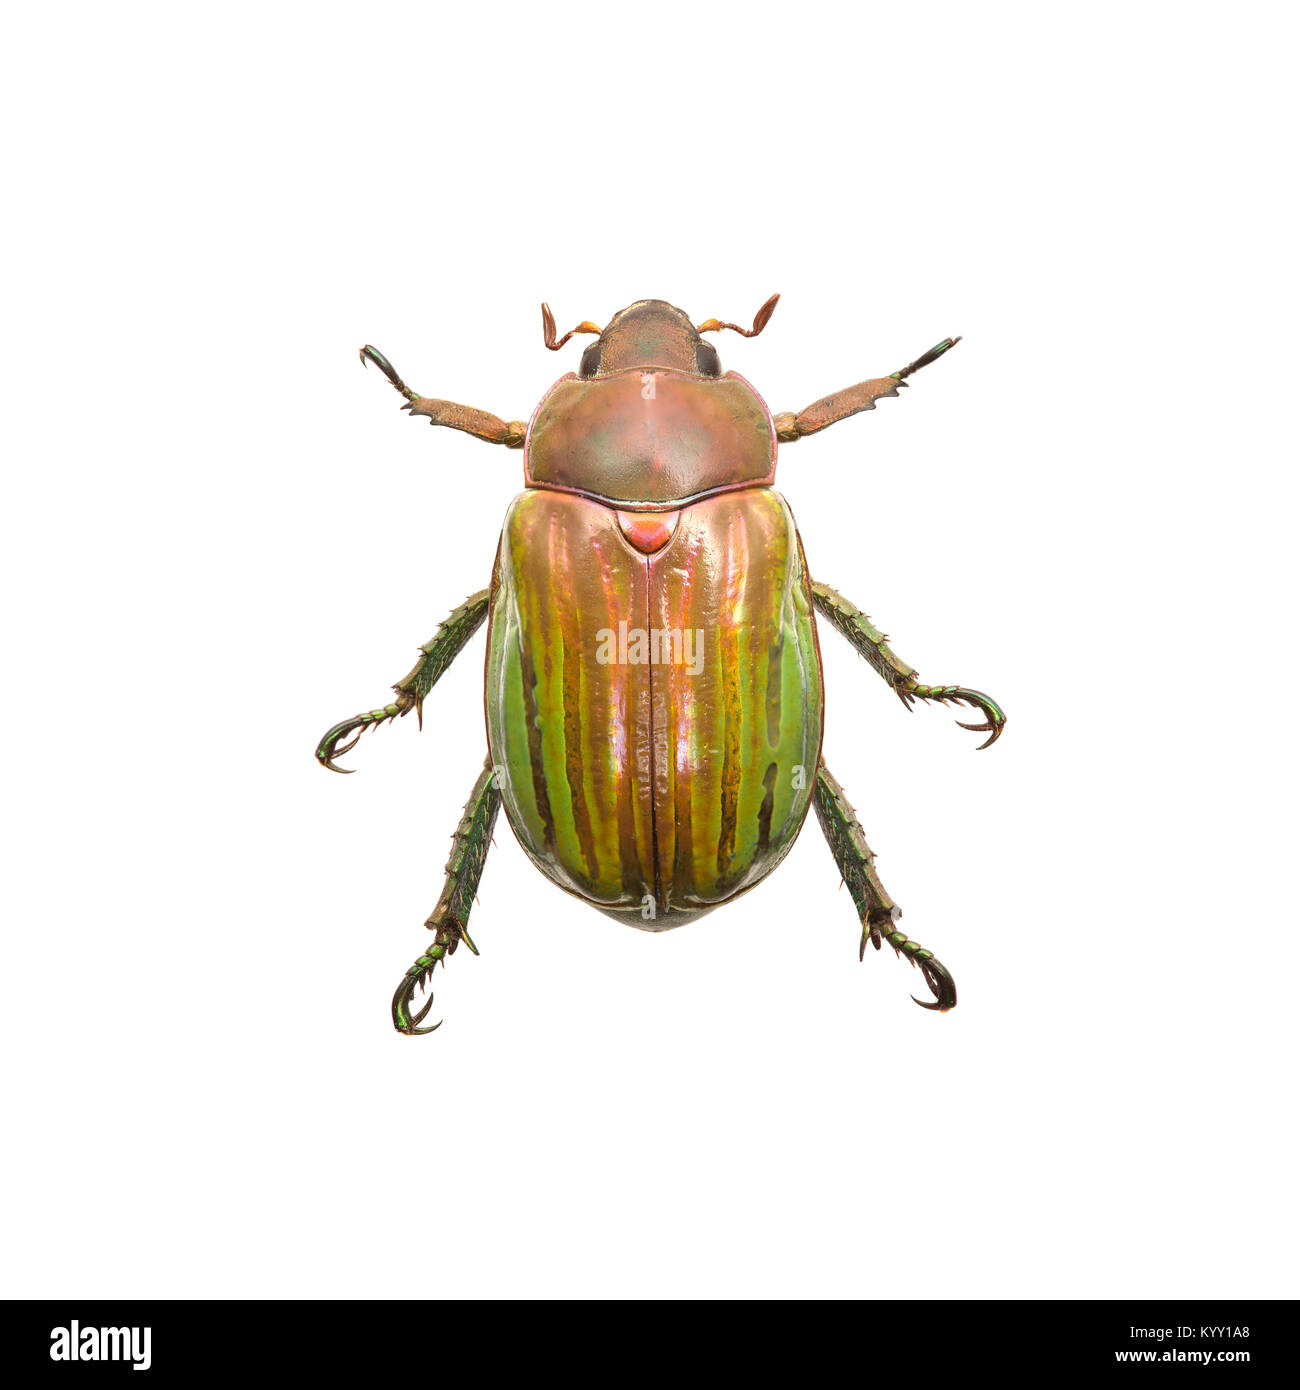 Close-up of beetle over white background - Stock Image